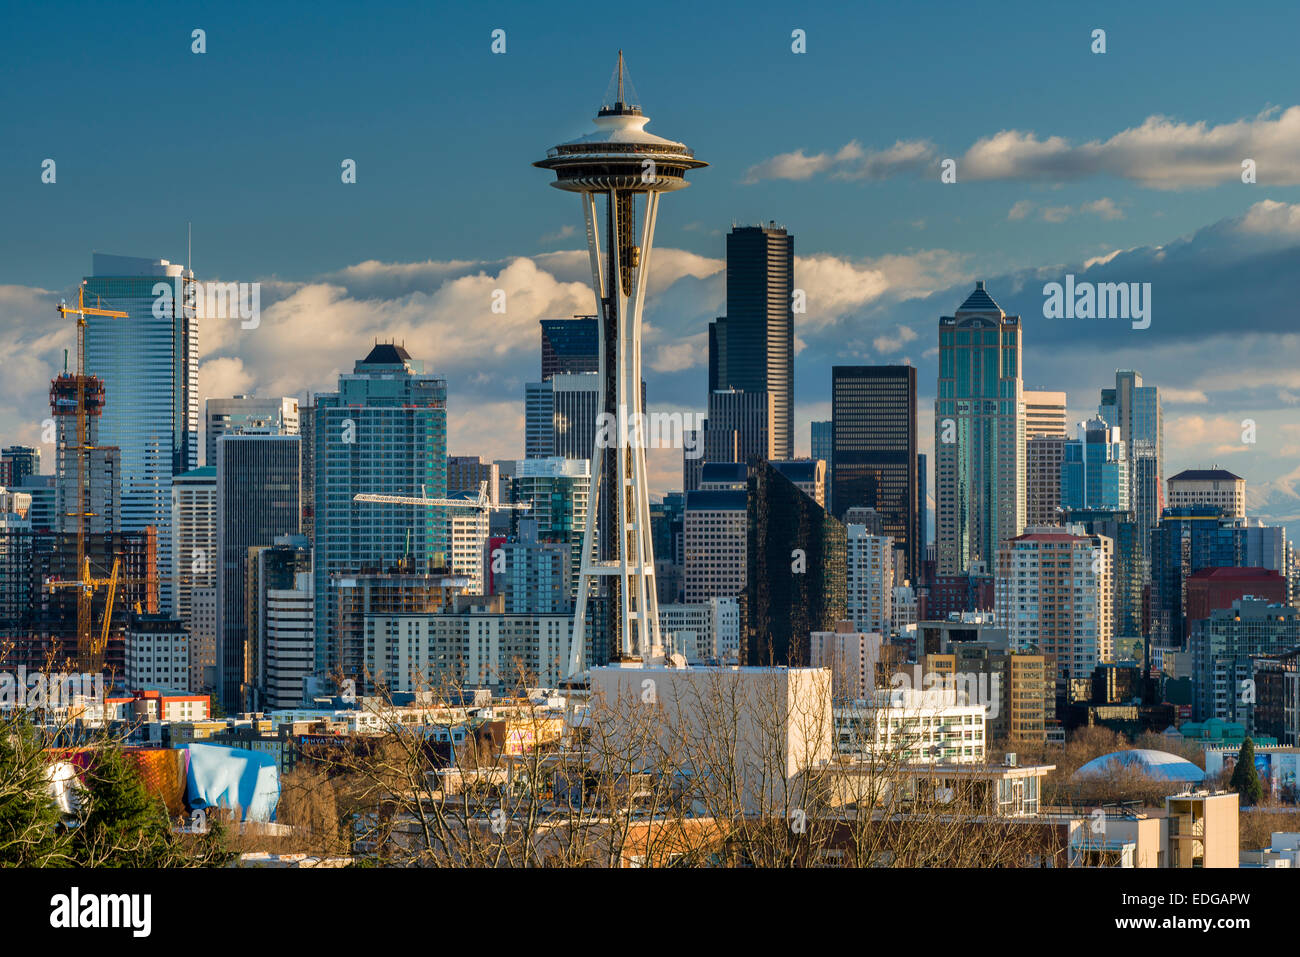 Downtown skyline with Space Needle, Seattle, Washington, USA - Stock Image